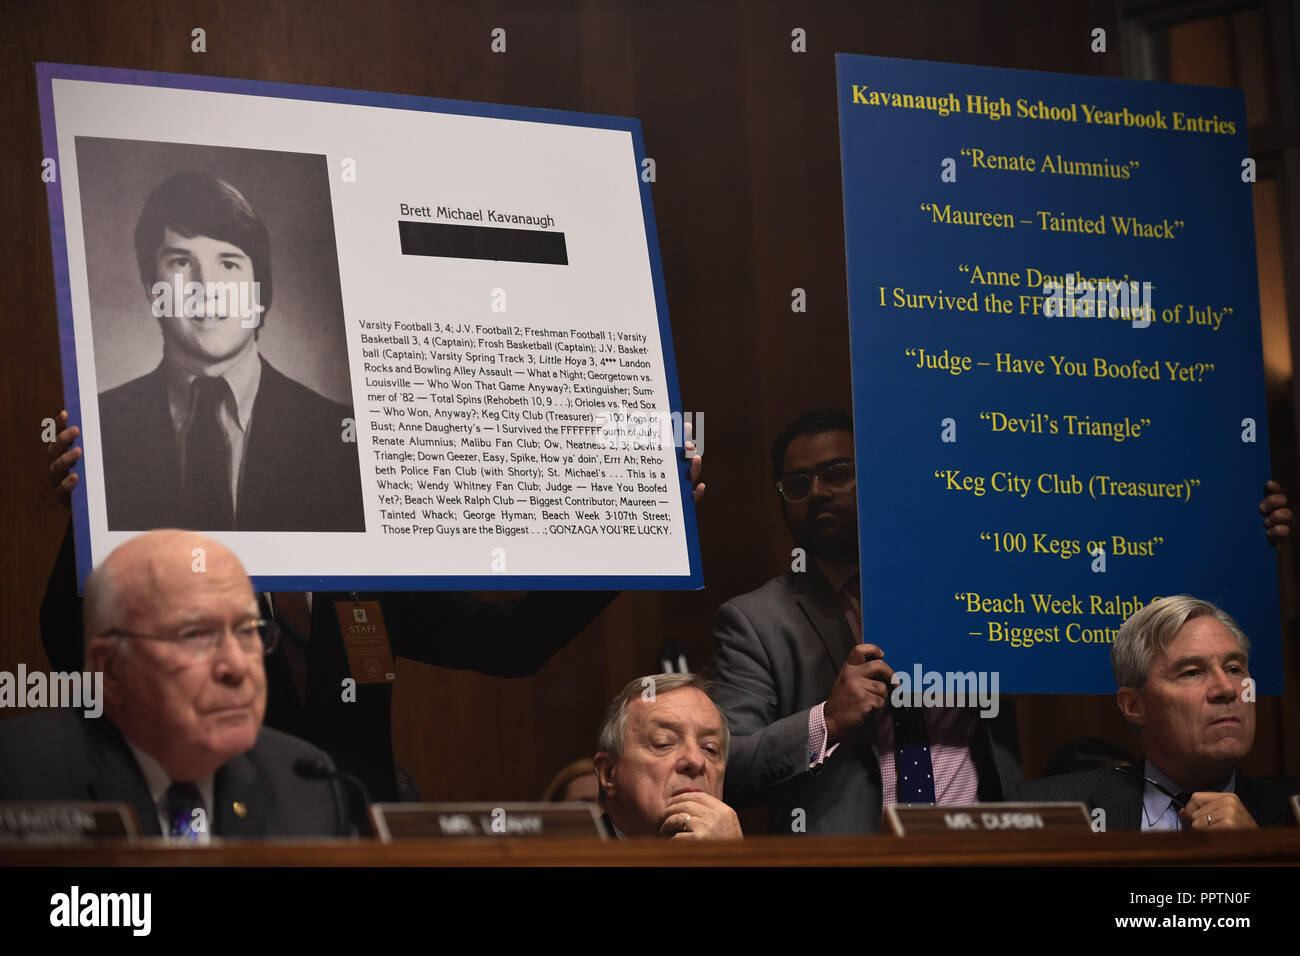 Washington, District of Columbia, USA. 27th Sep, 2018. Extracts of his high school yearbook are displayed as Supreme Court nominee Brett Kavanaugh testifies before the US Senate Judiciary Committee on Capitol Hill in Washington, DC, September 27, 2018. /POOL/SAUL LOEB Credit: Saul Loeb/CNP/ZUMA Wire/Alamy Live News. Stock Photo